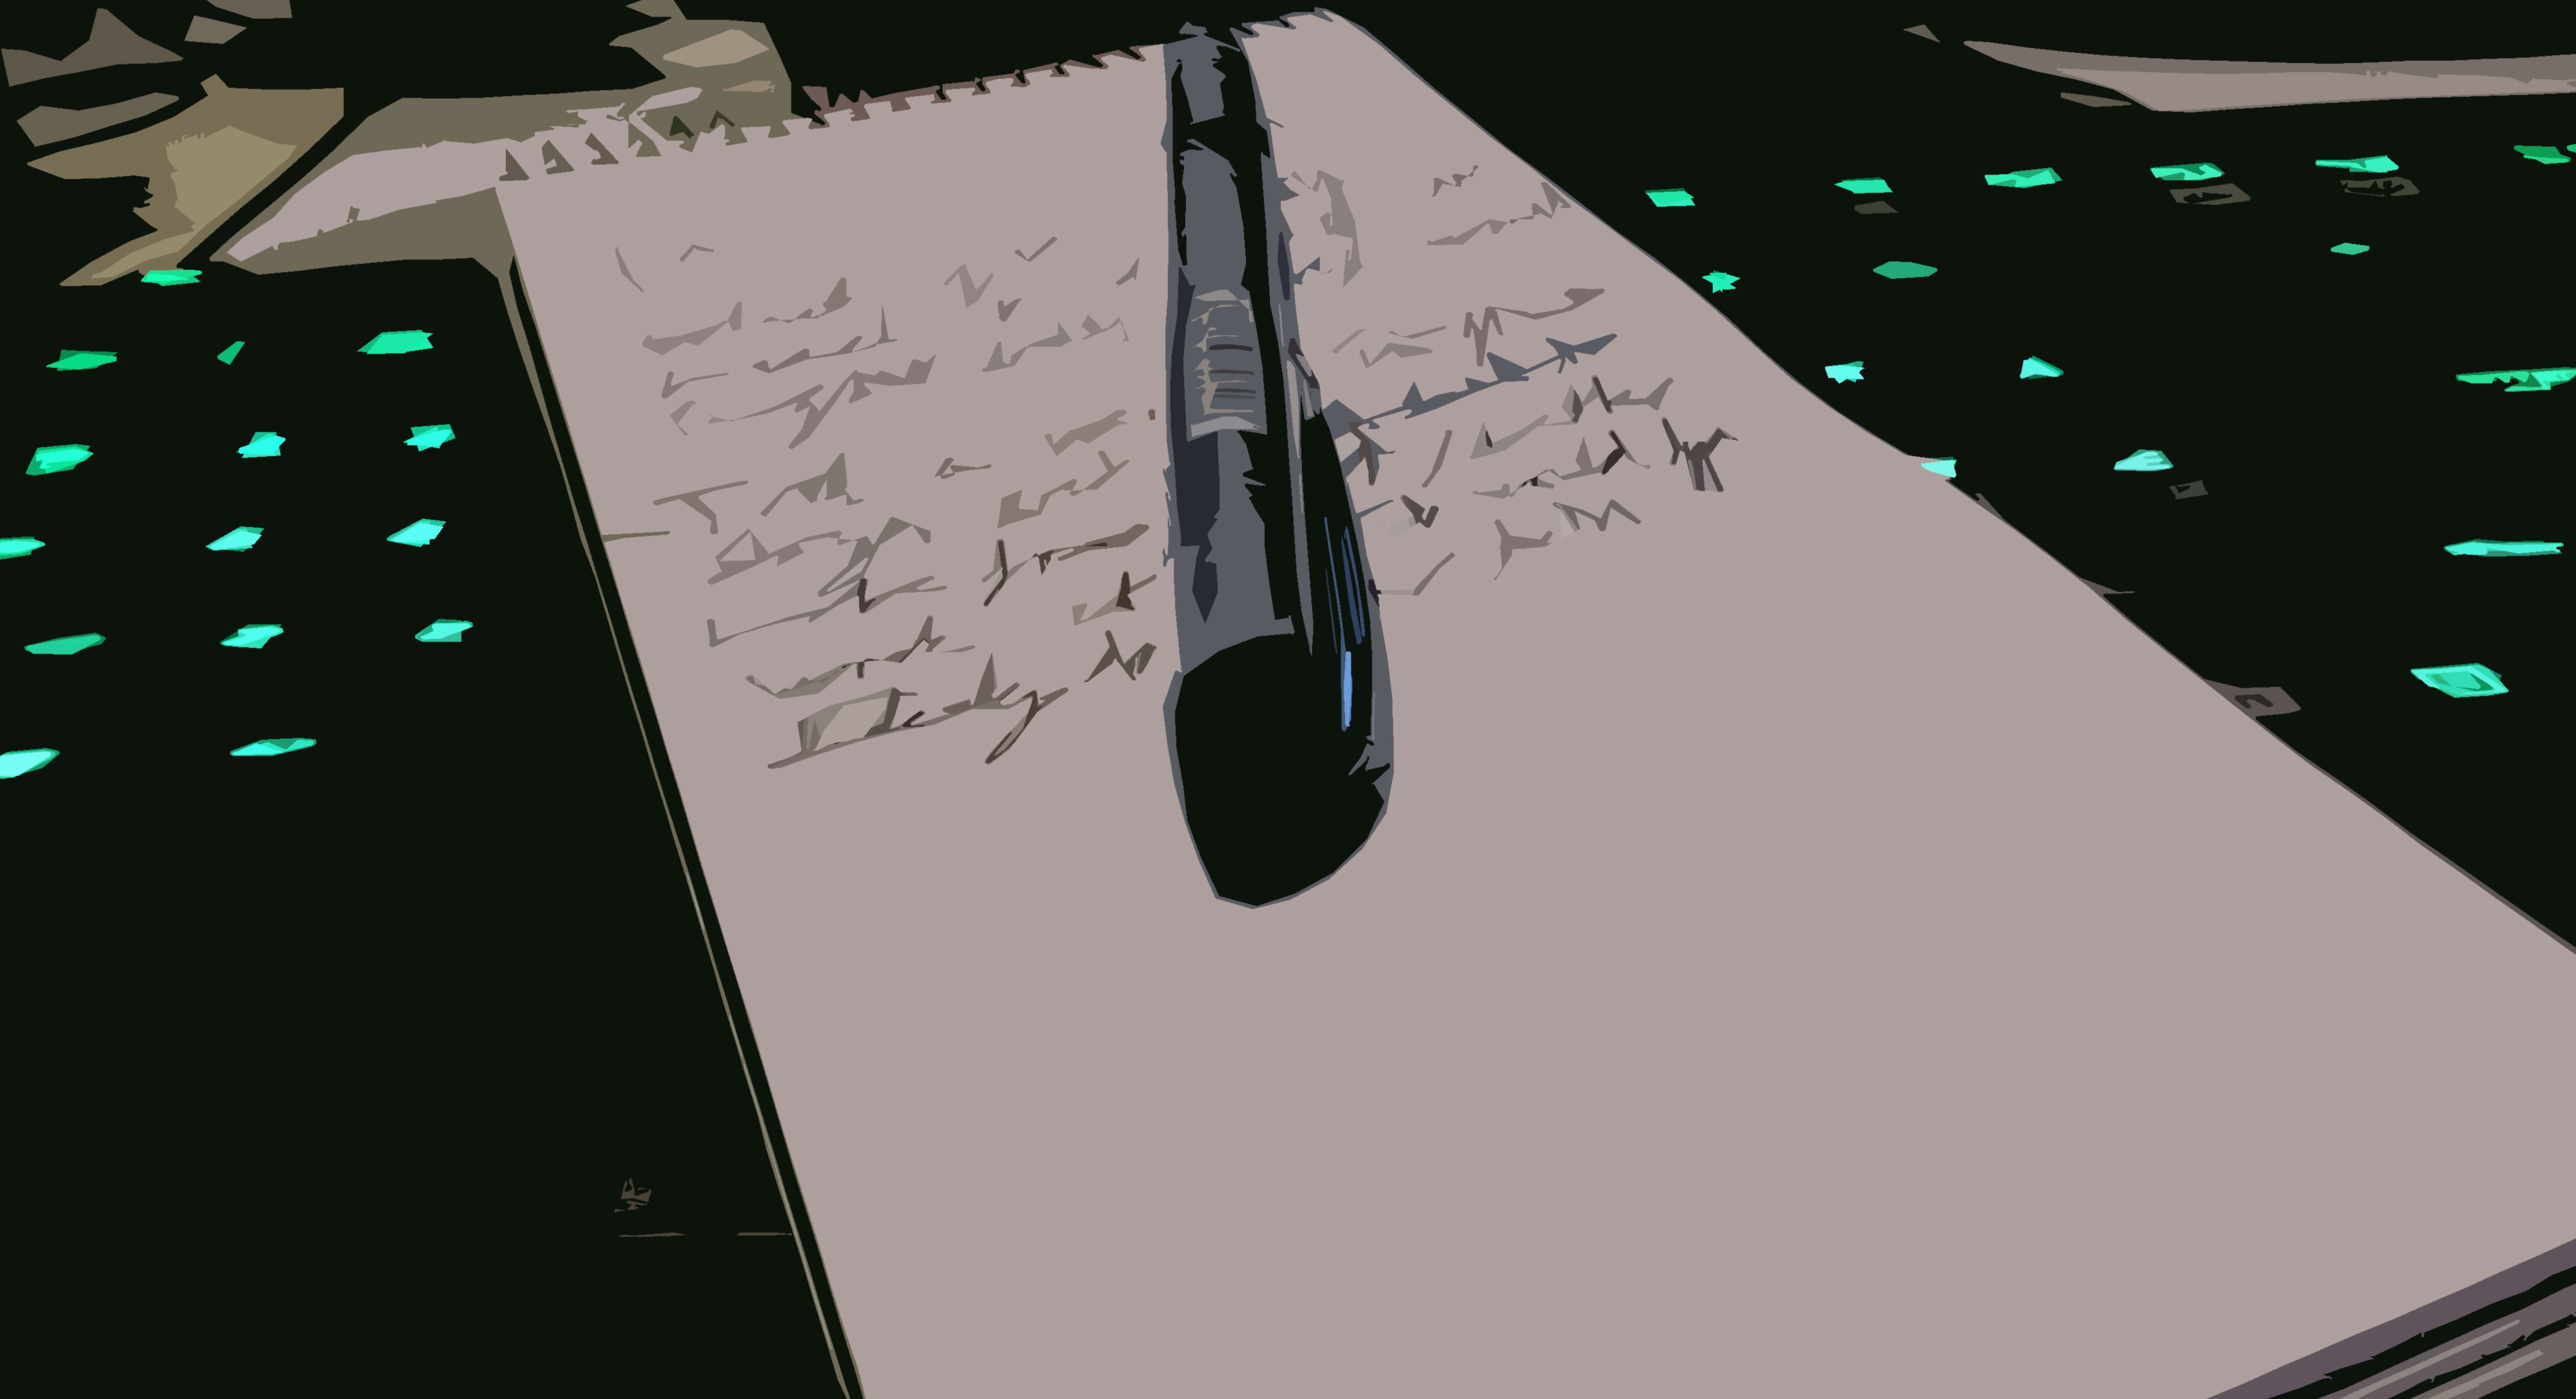 Notebook on keyboard, photographed and edited by Fredrik Walløe